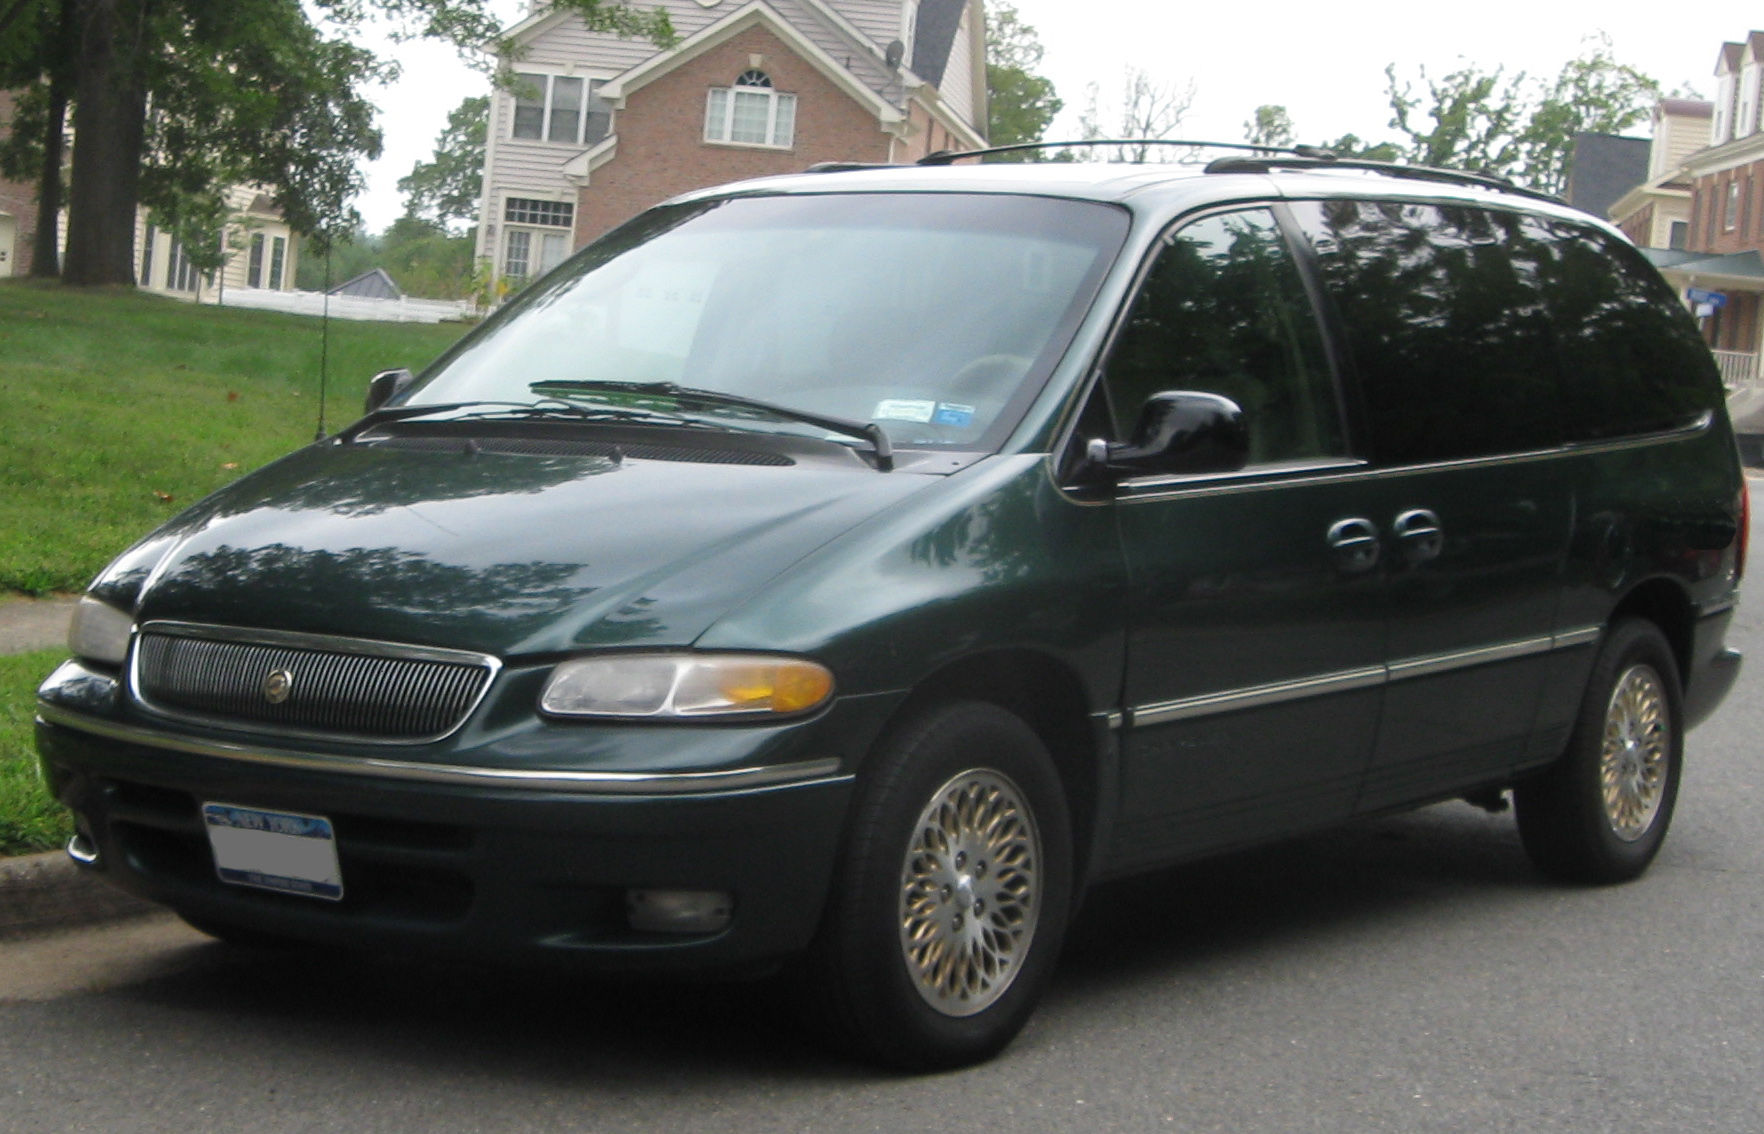 1996 Chrysler Town And Country #16